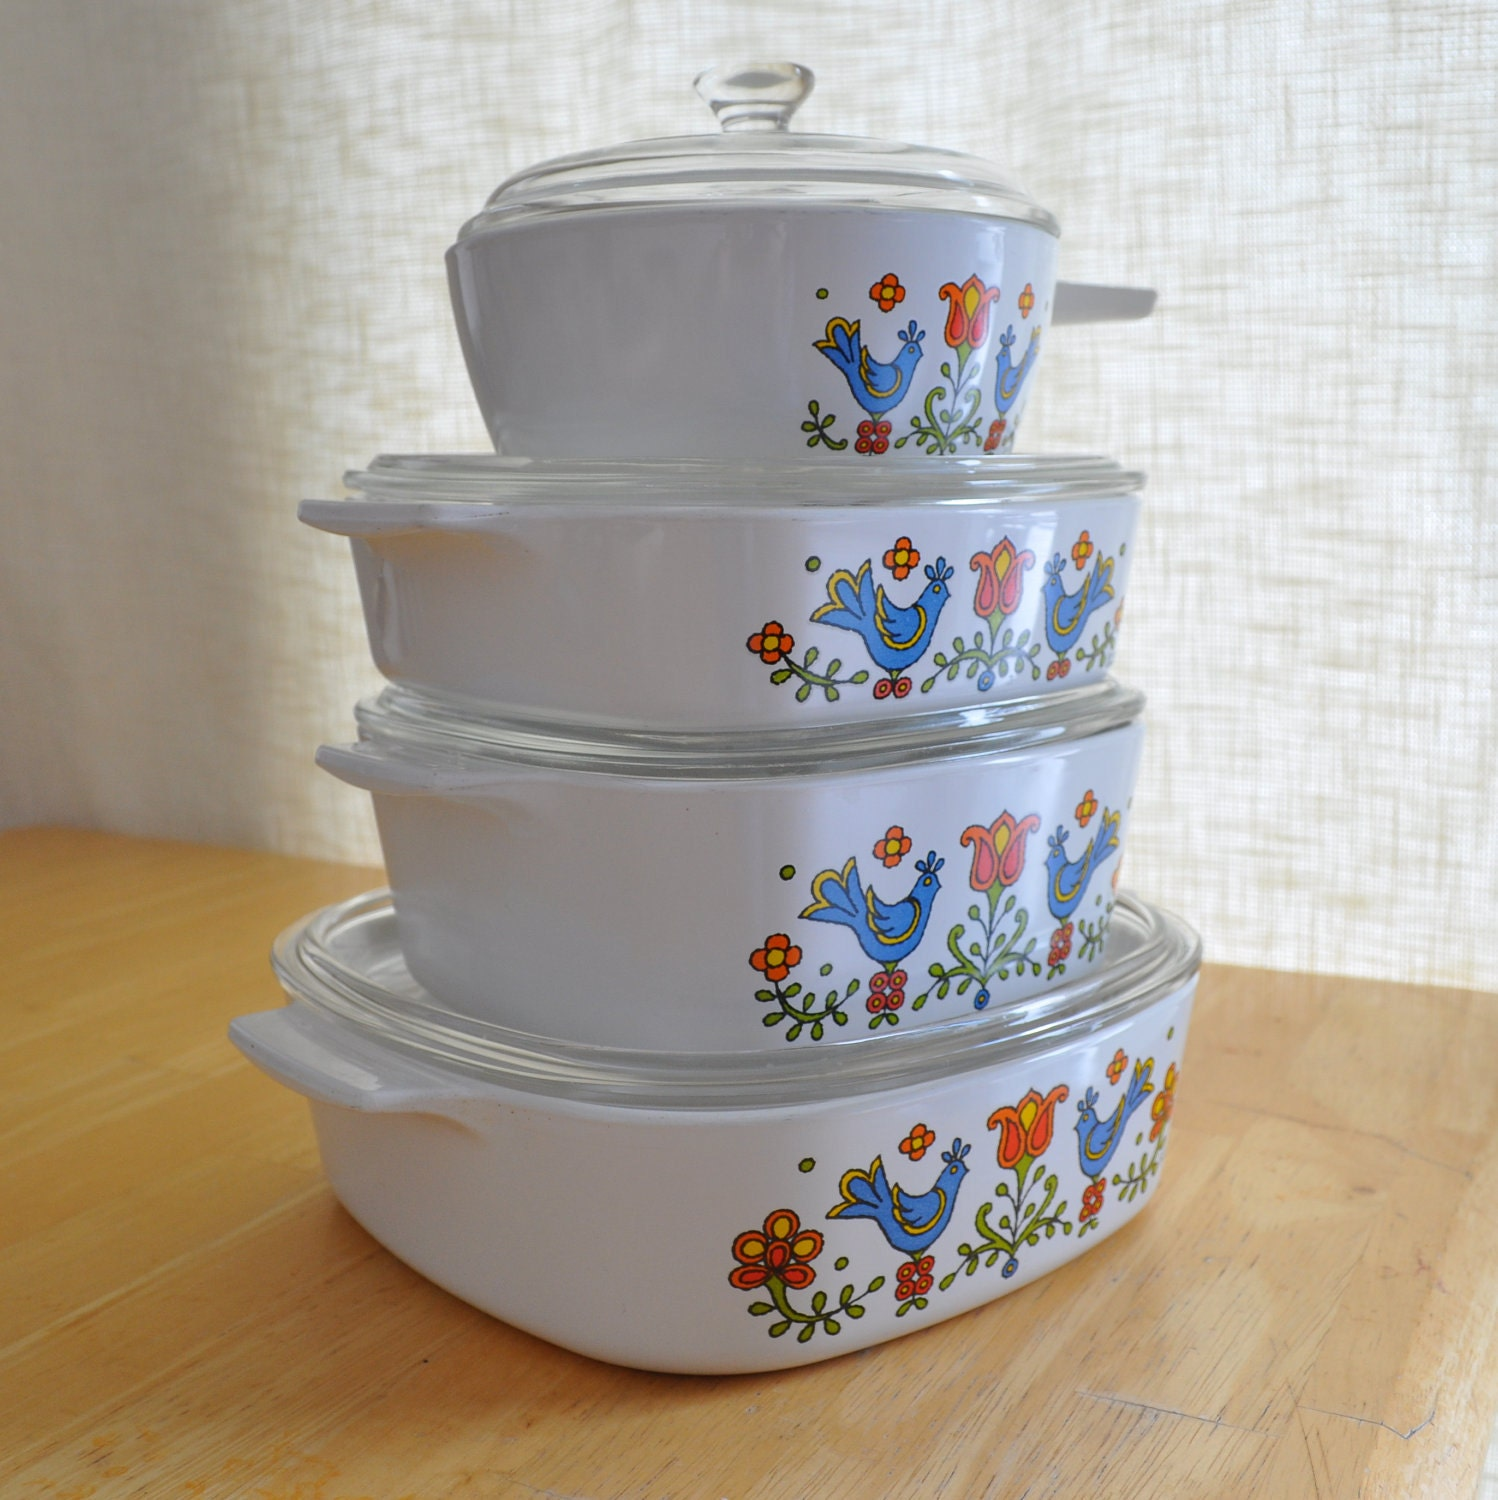 Corning Ware Country Festival Set With Lids